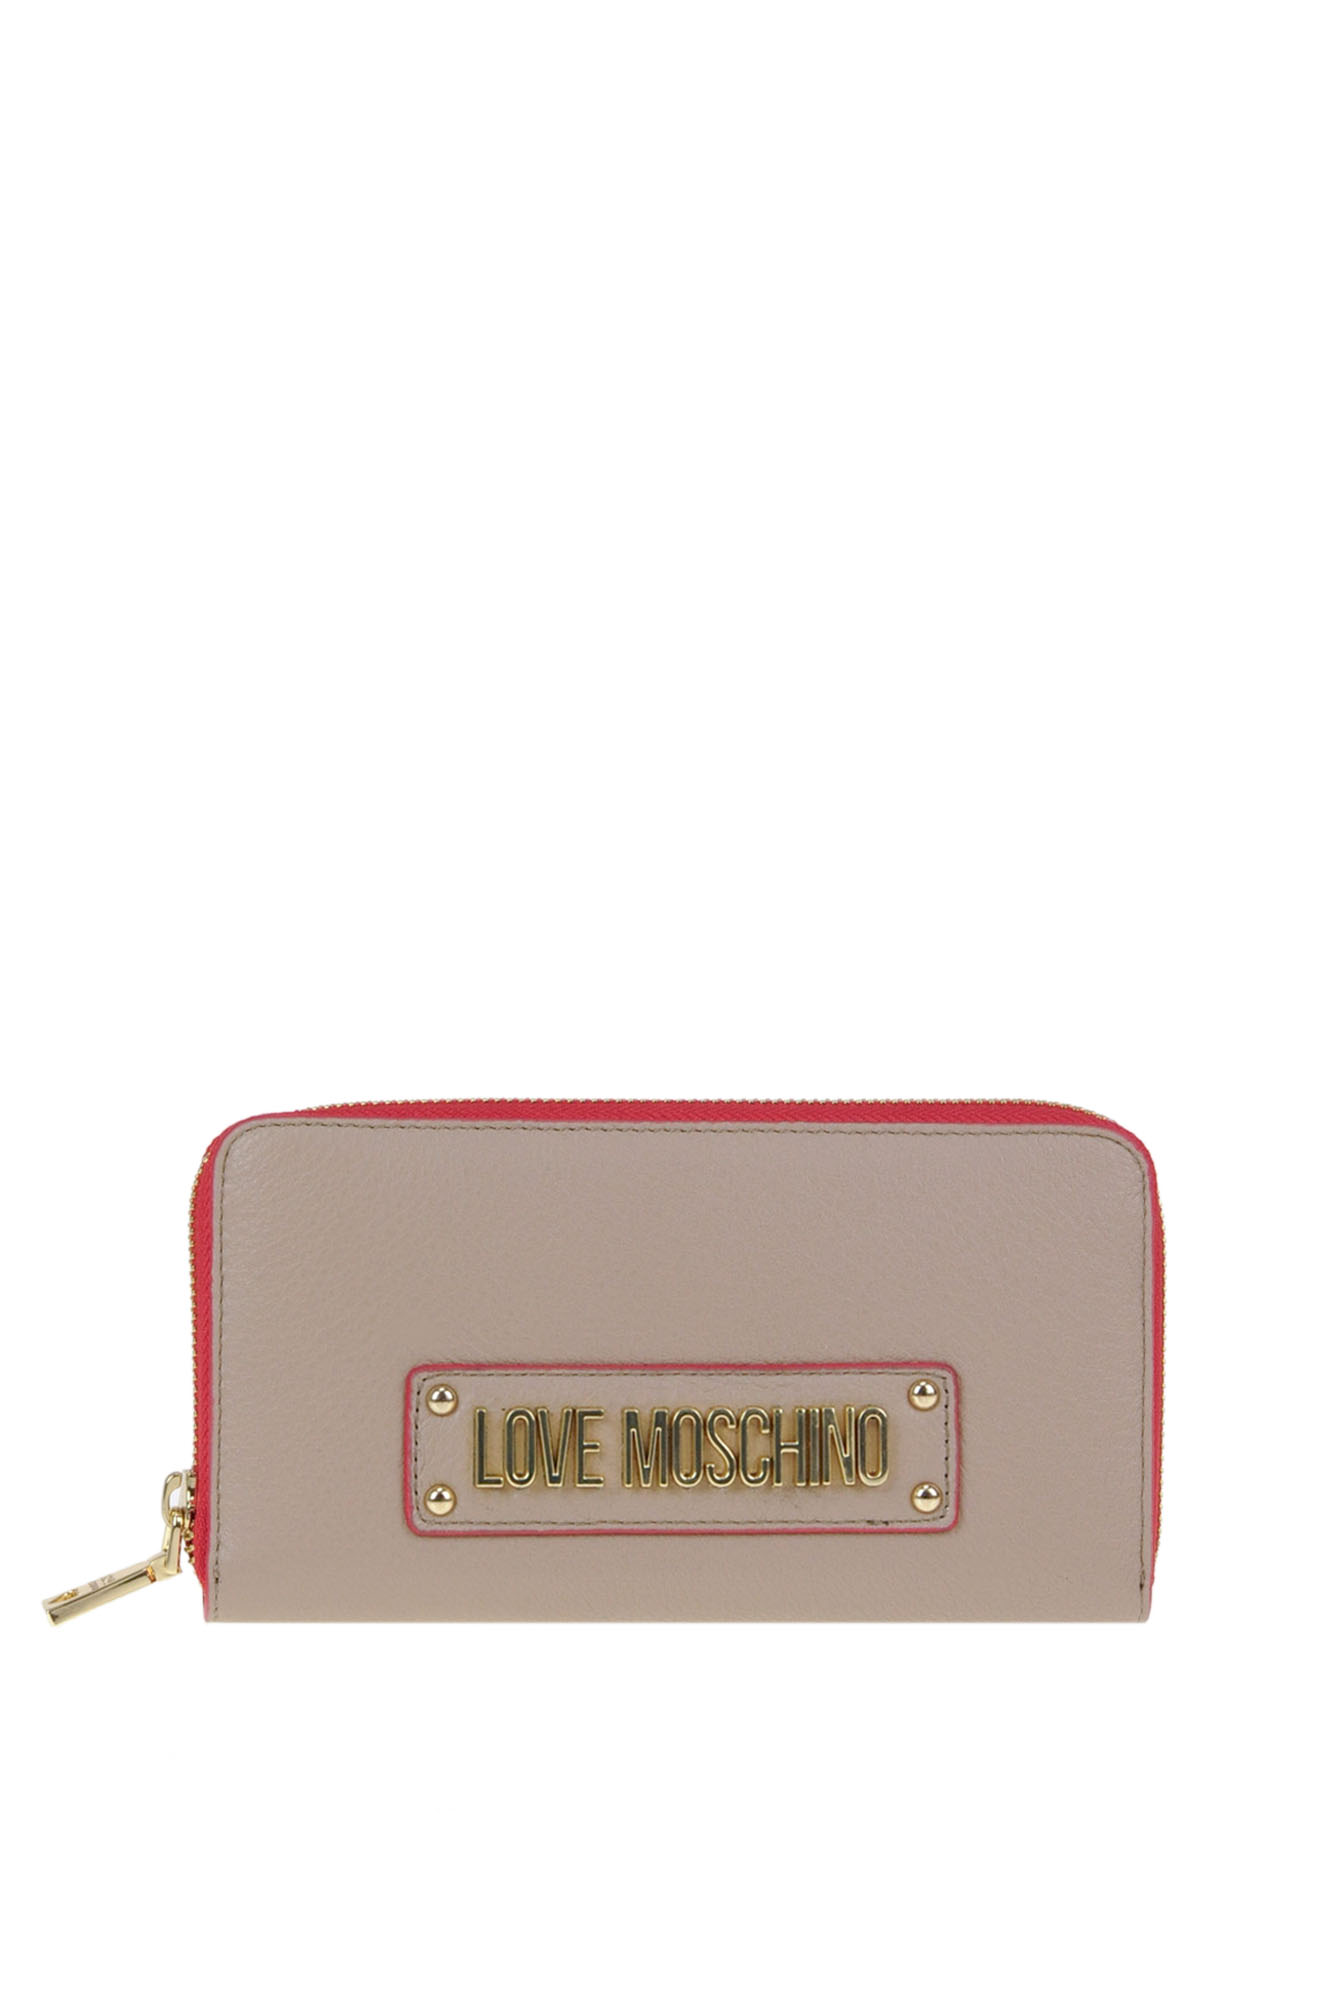 Love Moschino GRAINY LEATHER WALLET